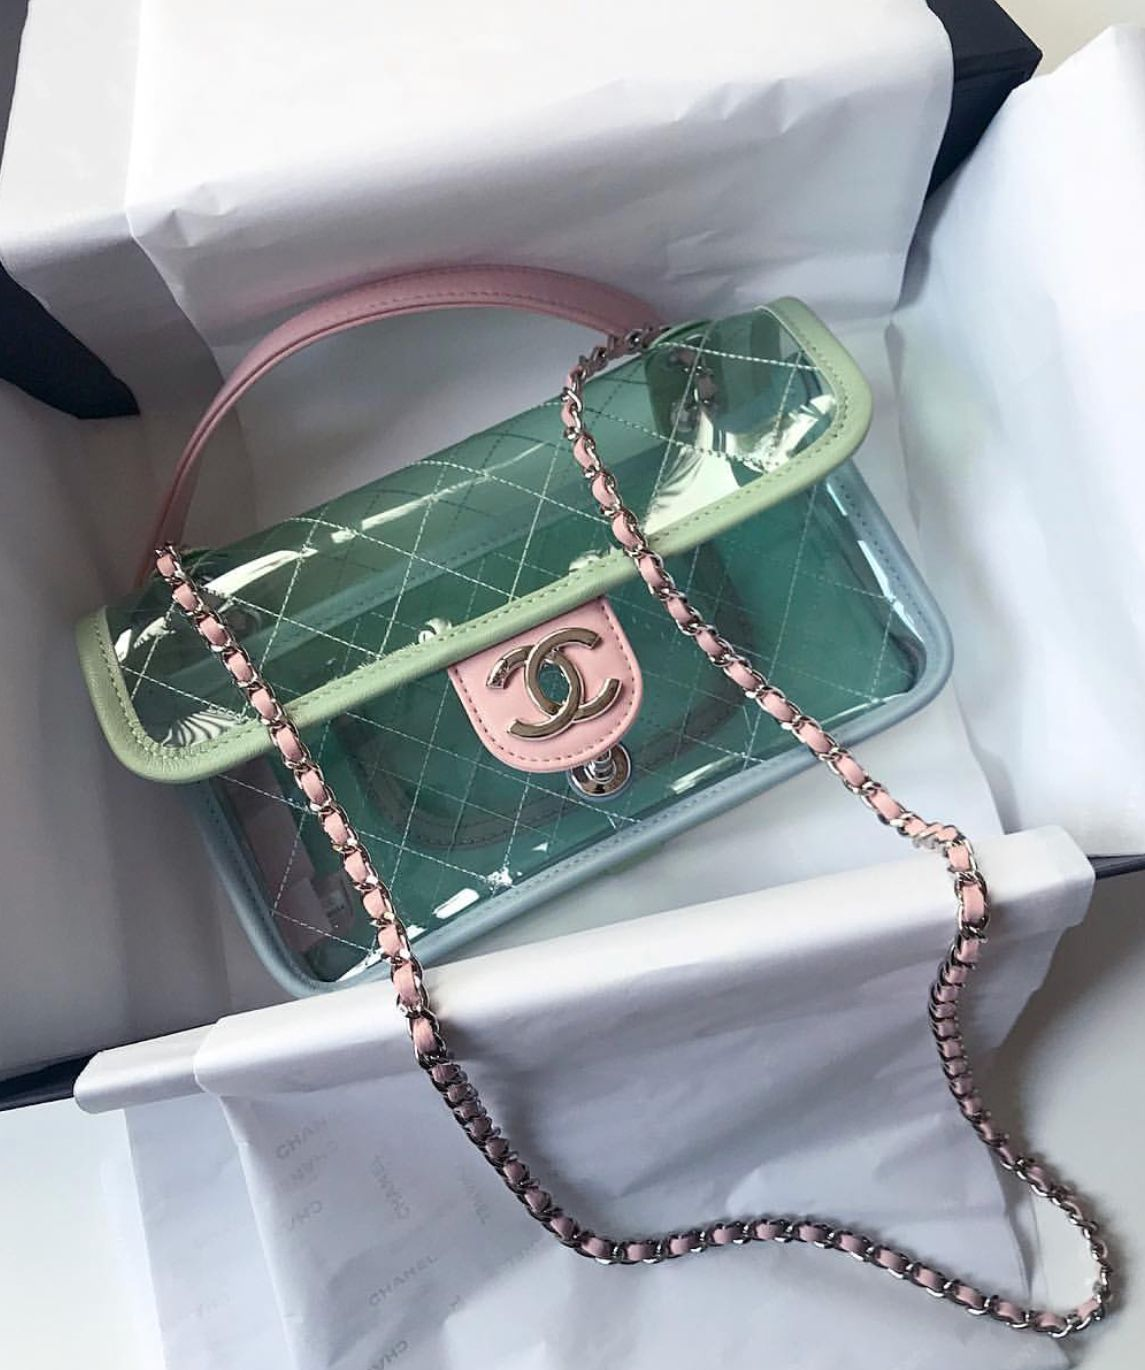 663ad87b5d58 Chanel vinyl flap bag. Hot items in summer